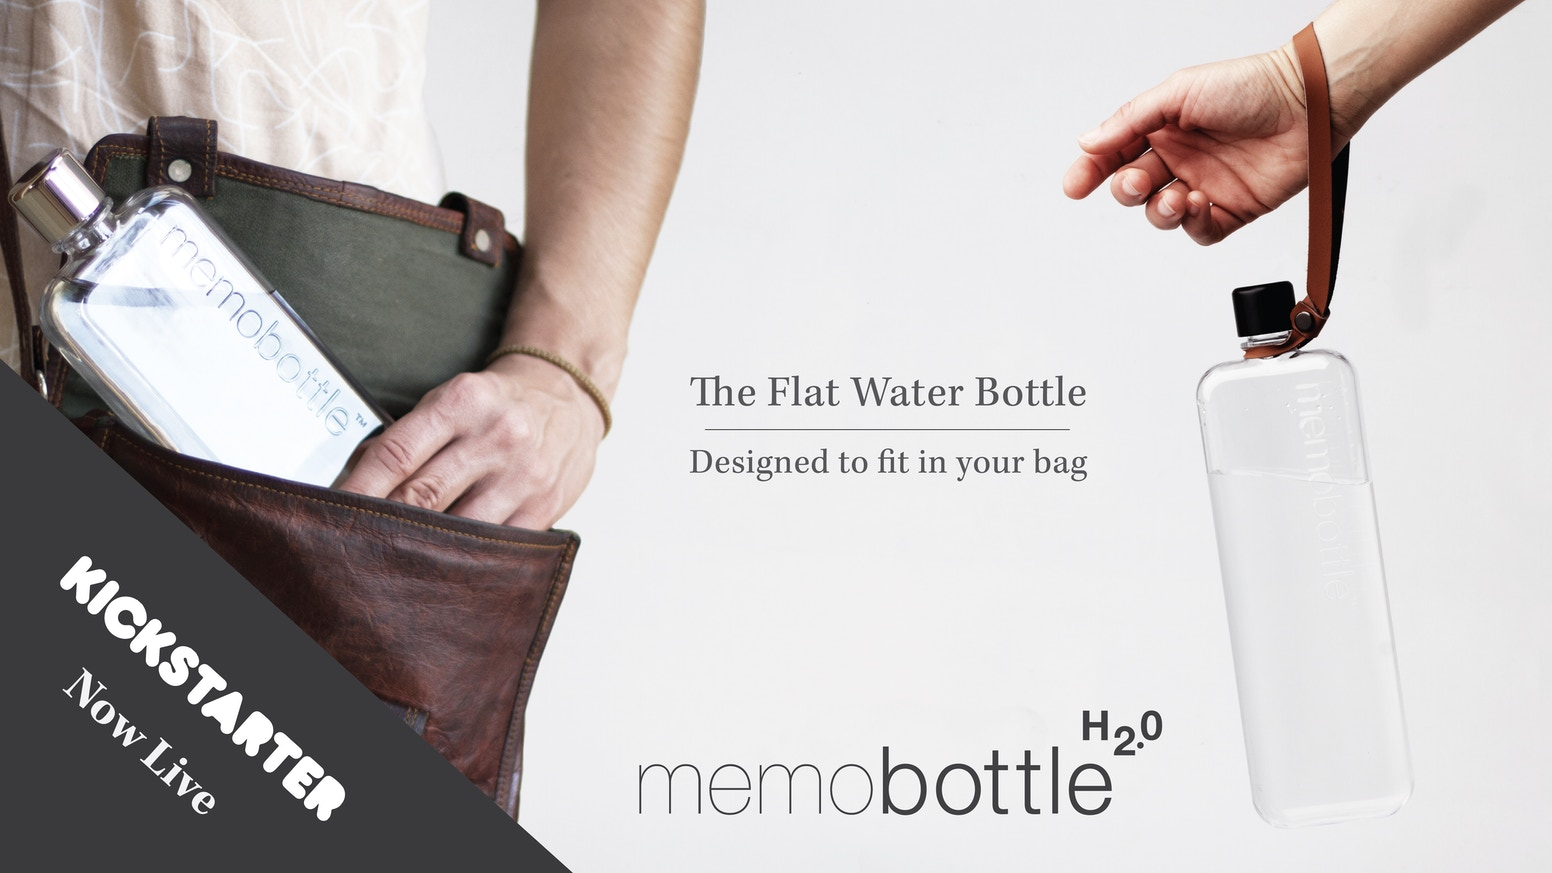 The flat water bottles that fit in your bag. Introducing two new memobottles - The Slim, The A7 and a range of premium accessories.